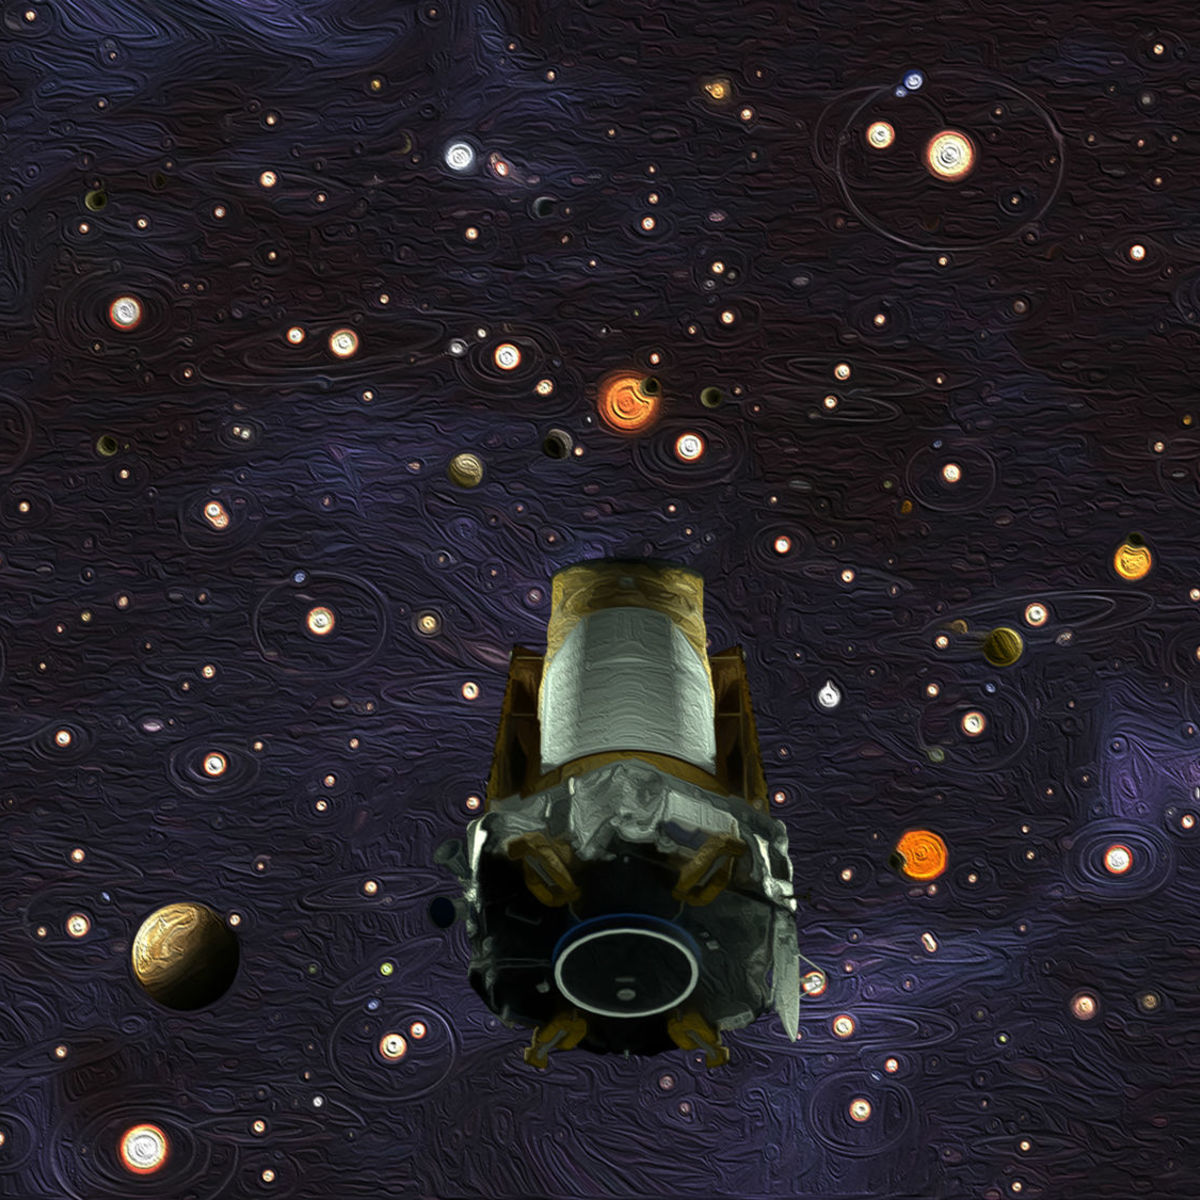 After nine years in orbit, Kepler Space Telescope leaves legacy of discovery